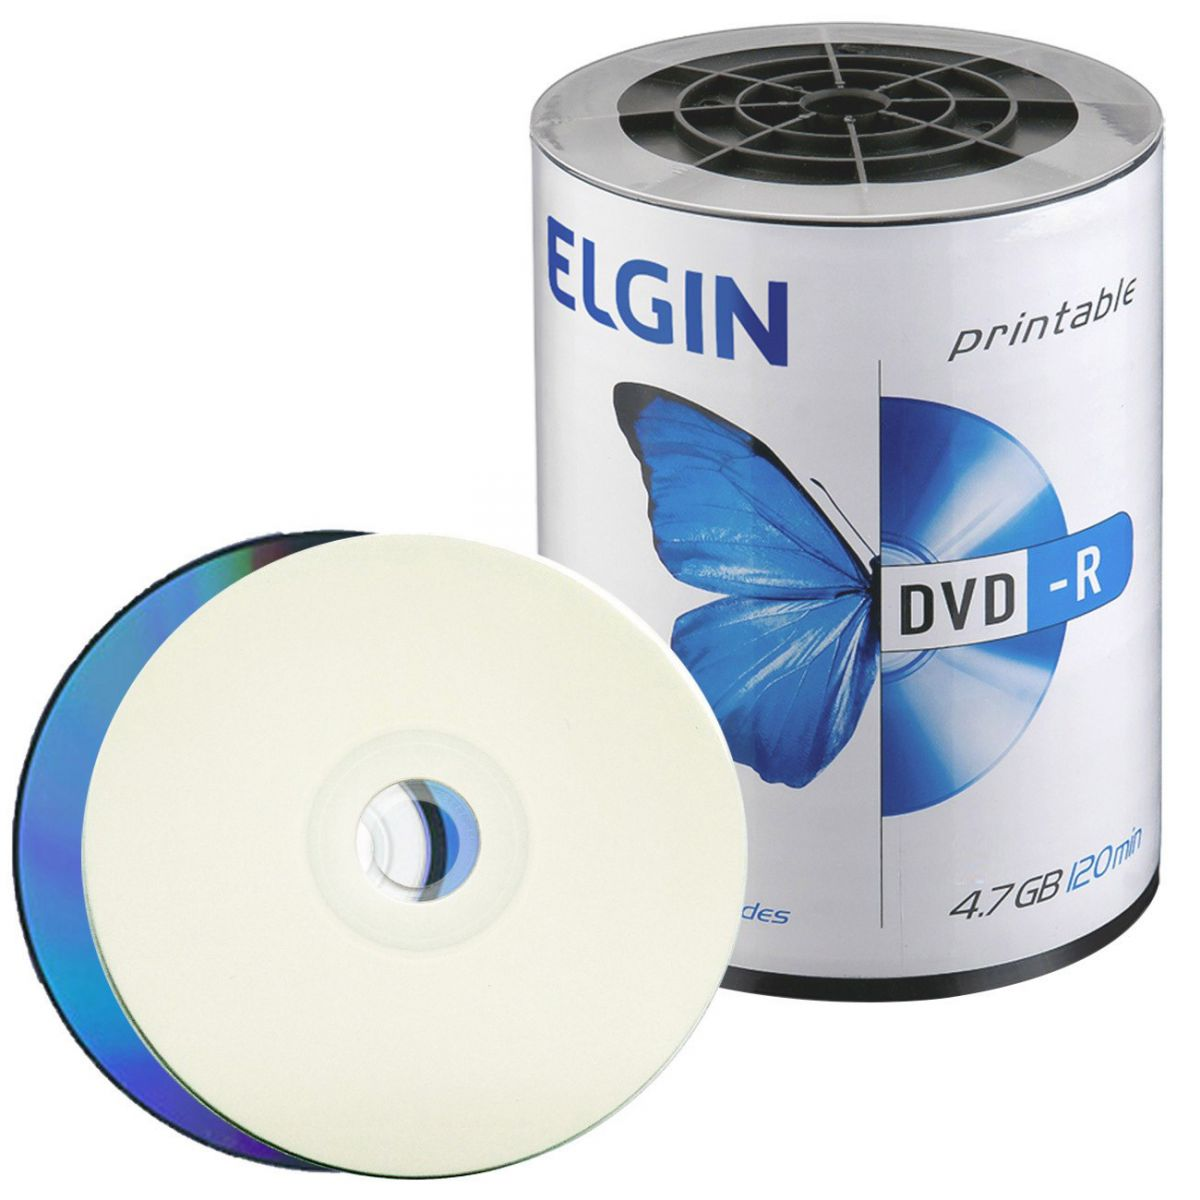 100 DVD-R ELGIN PRINTABLE 16X